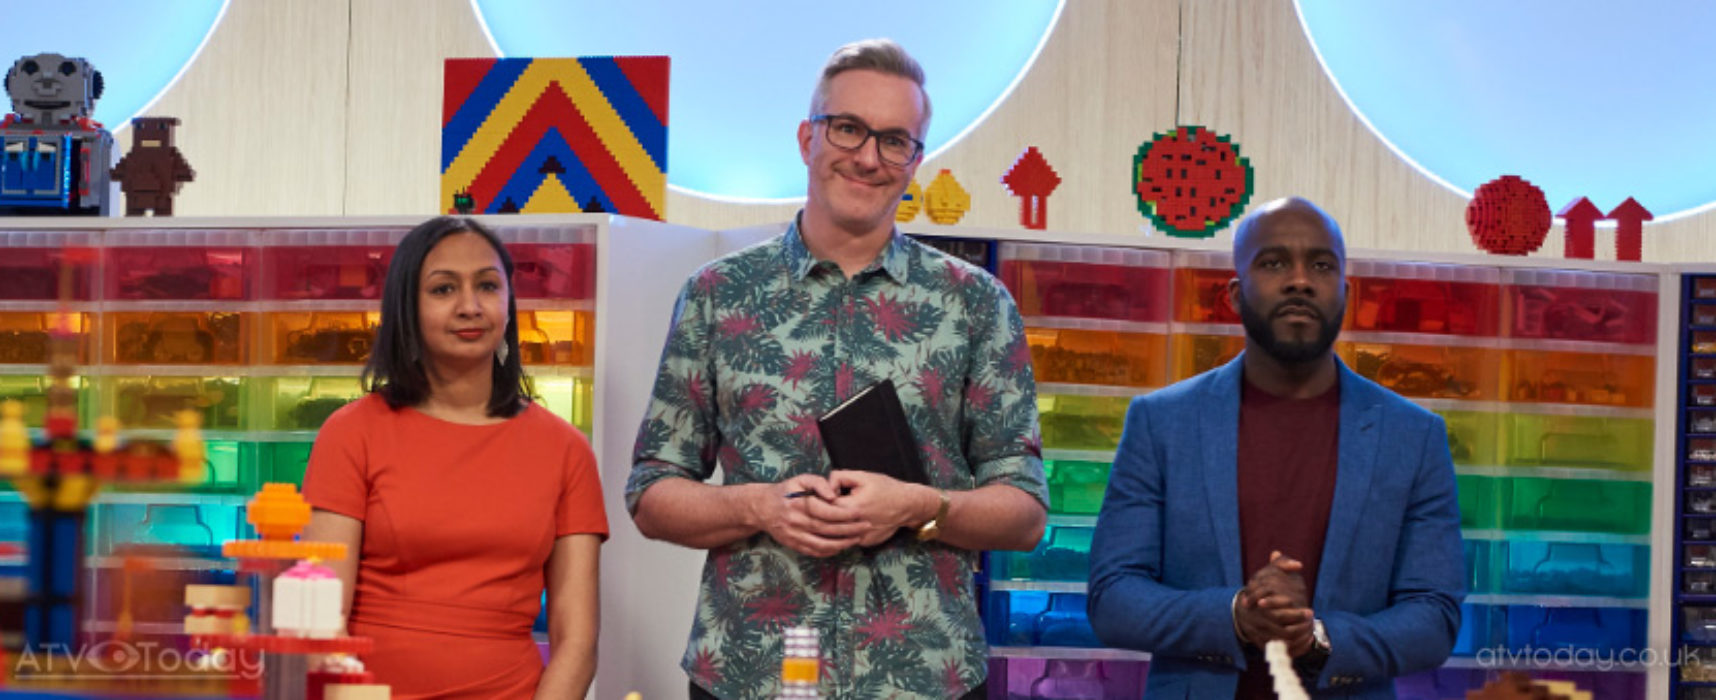 Telly Today: Golf, Lego and the West Midlands Ambulance Service